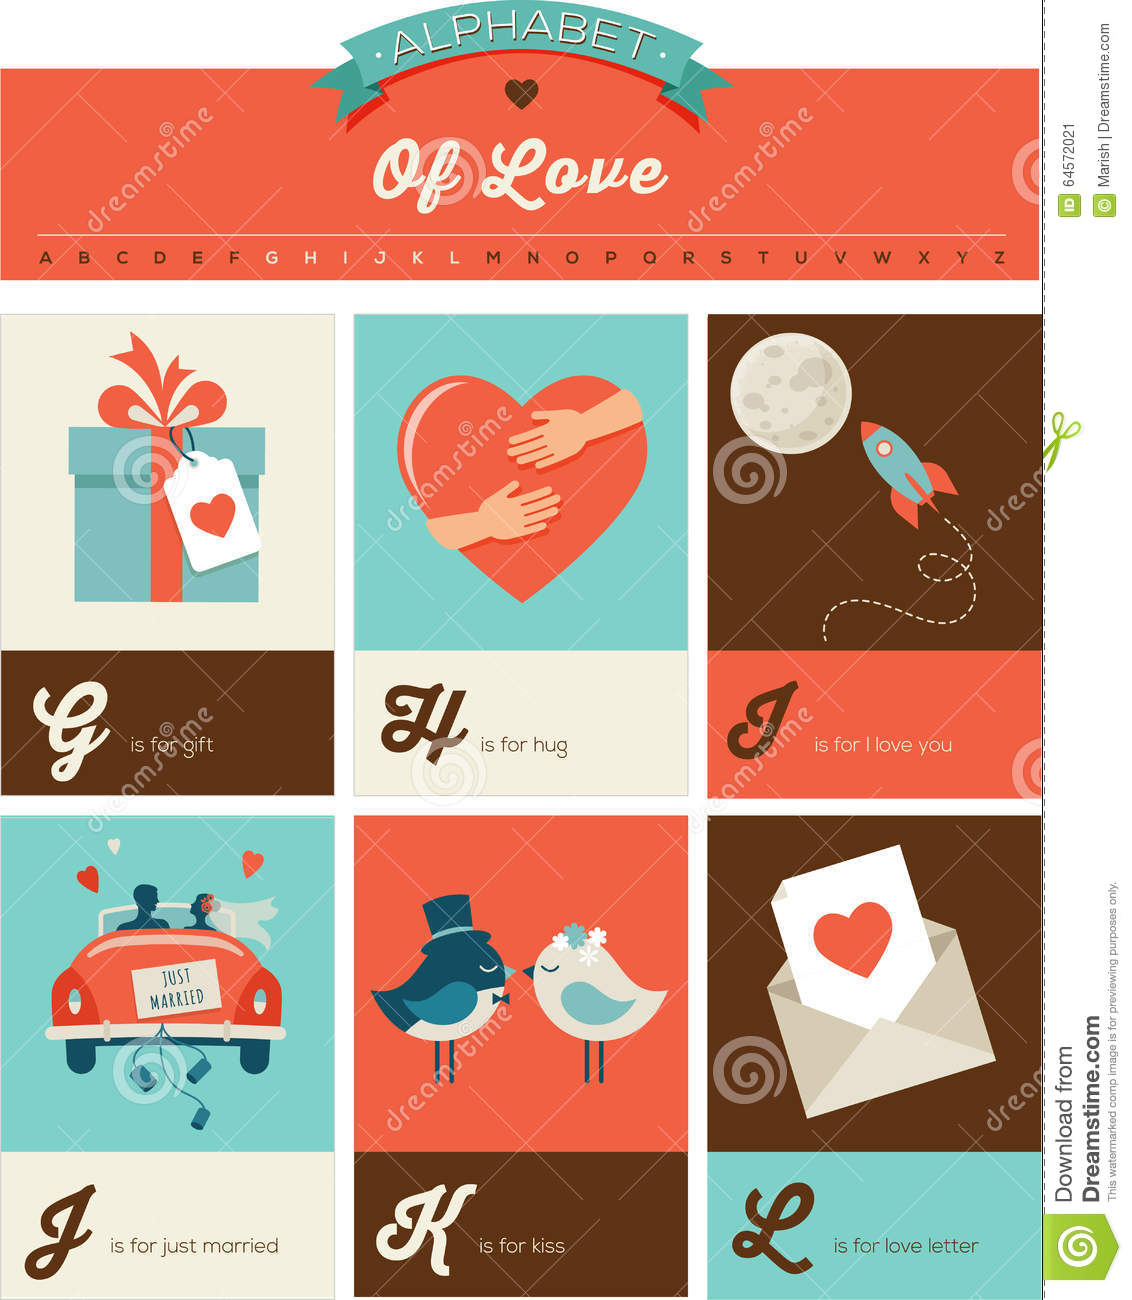 Valentines Day Abc Alphabet Poster Stock Vector Illustration Of